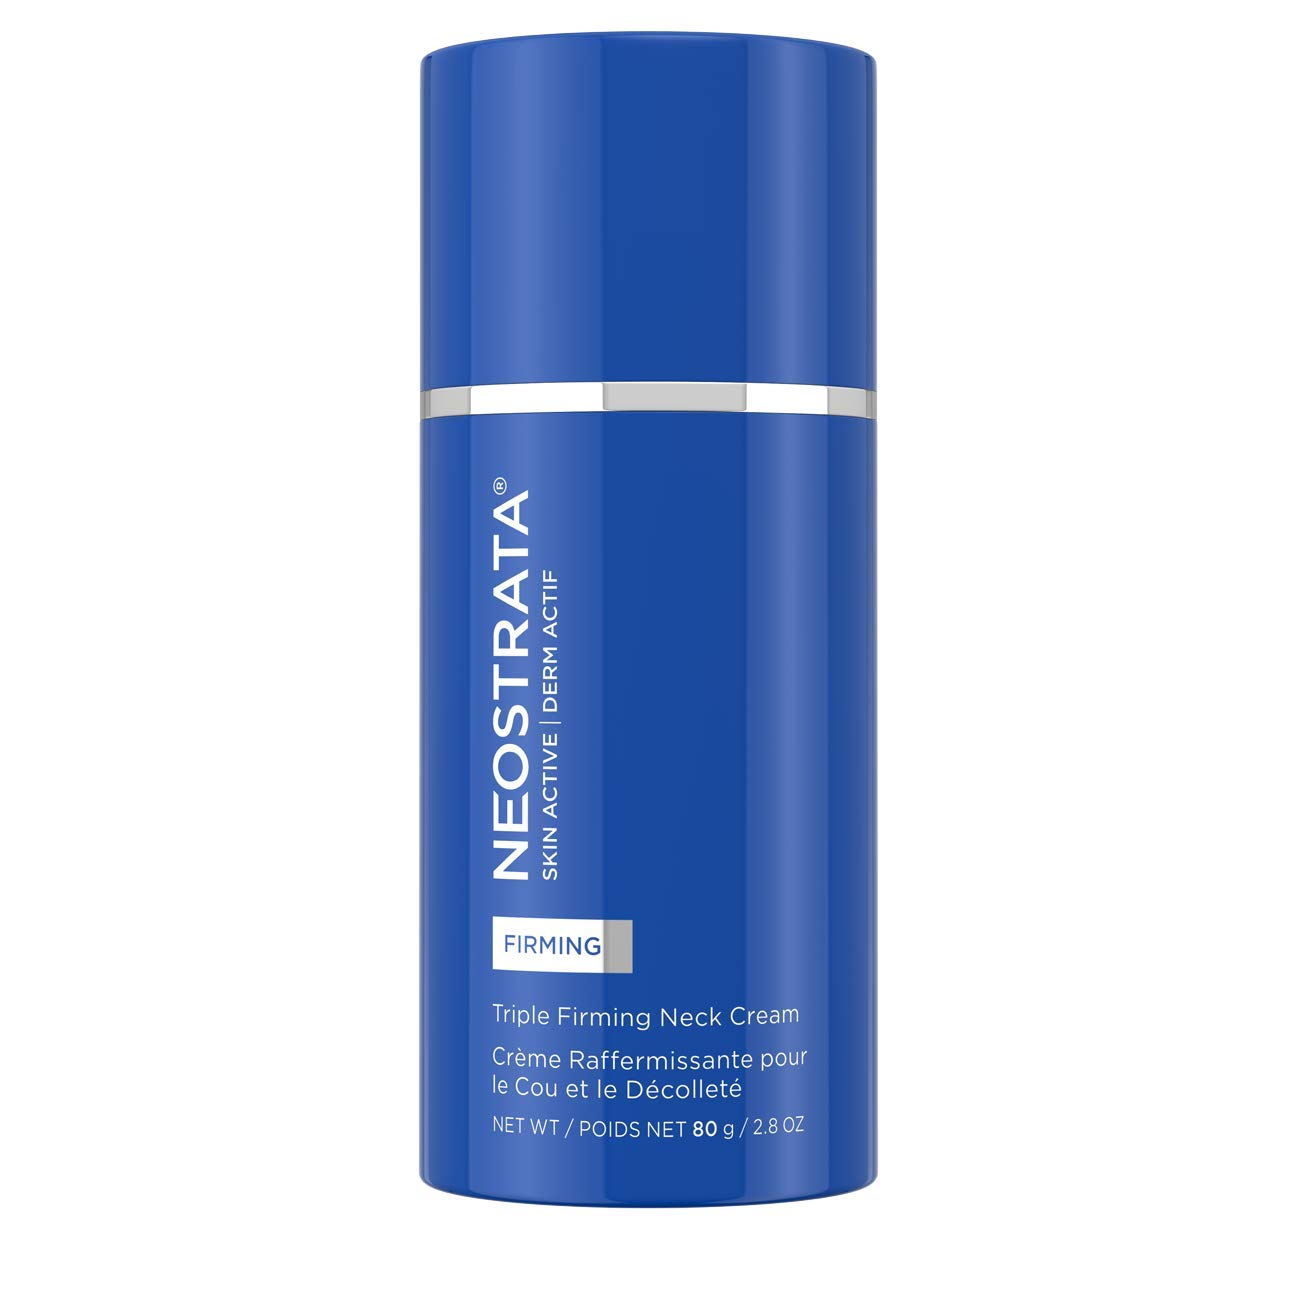 NEOSTRATA SKIN ACTIVE Firming Triple Firming Neck Cream, 2.8 ounces by NeoStrata